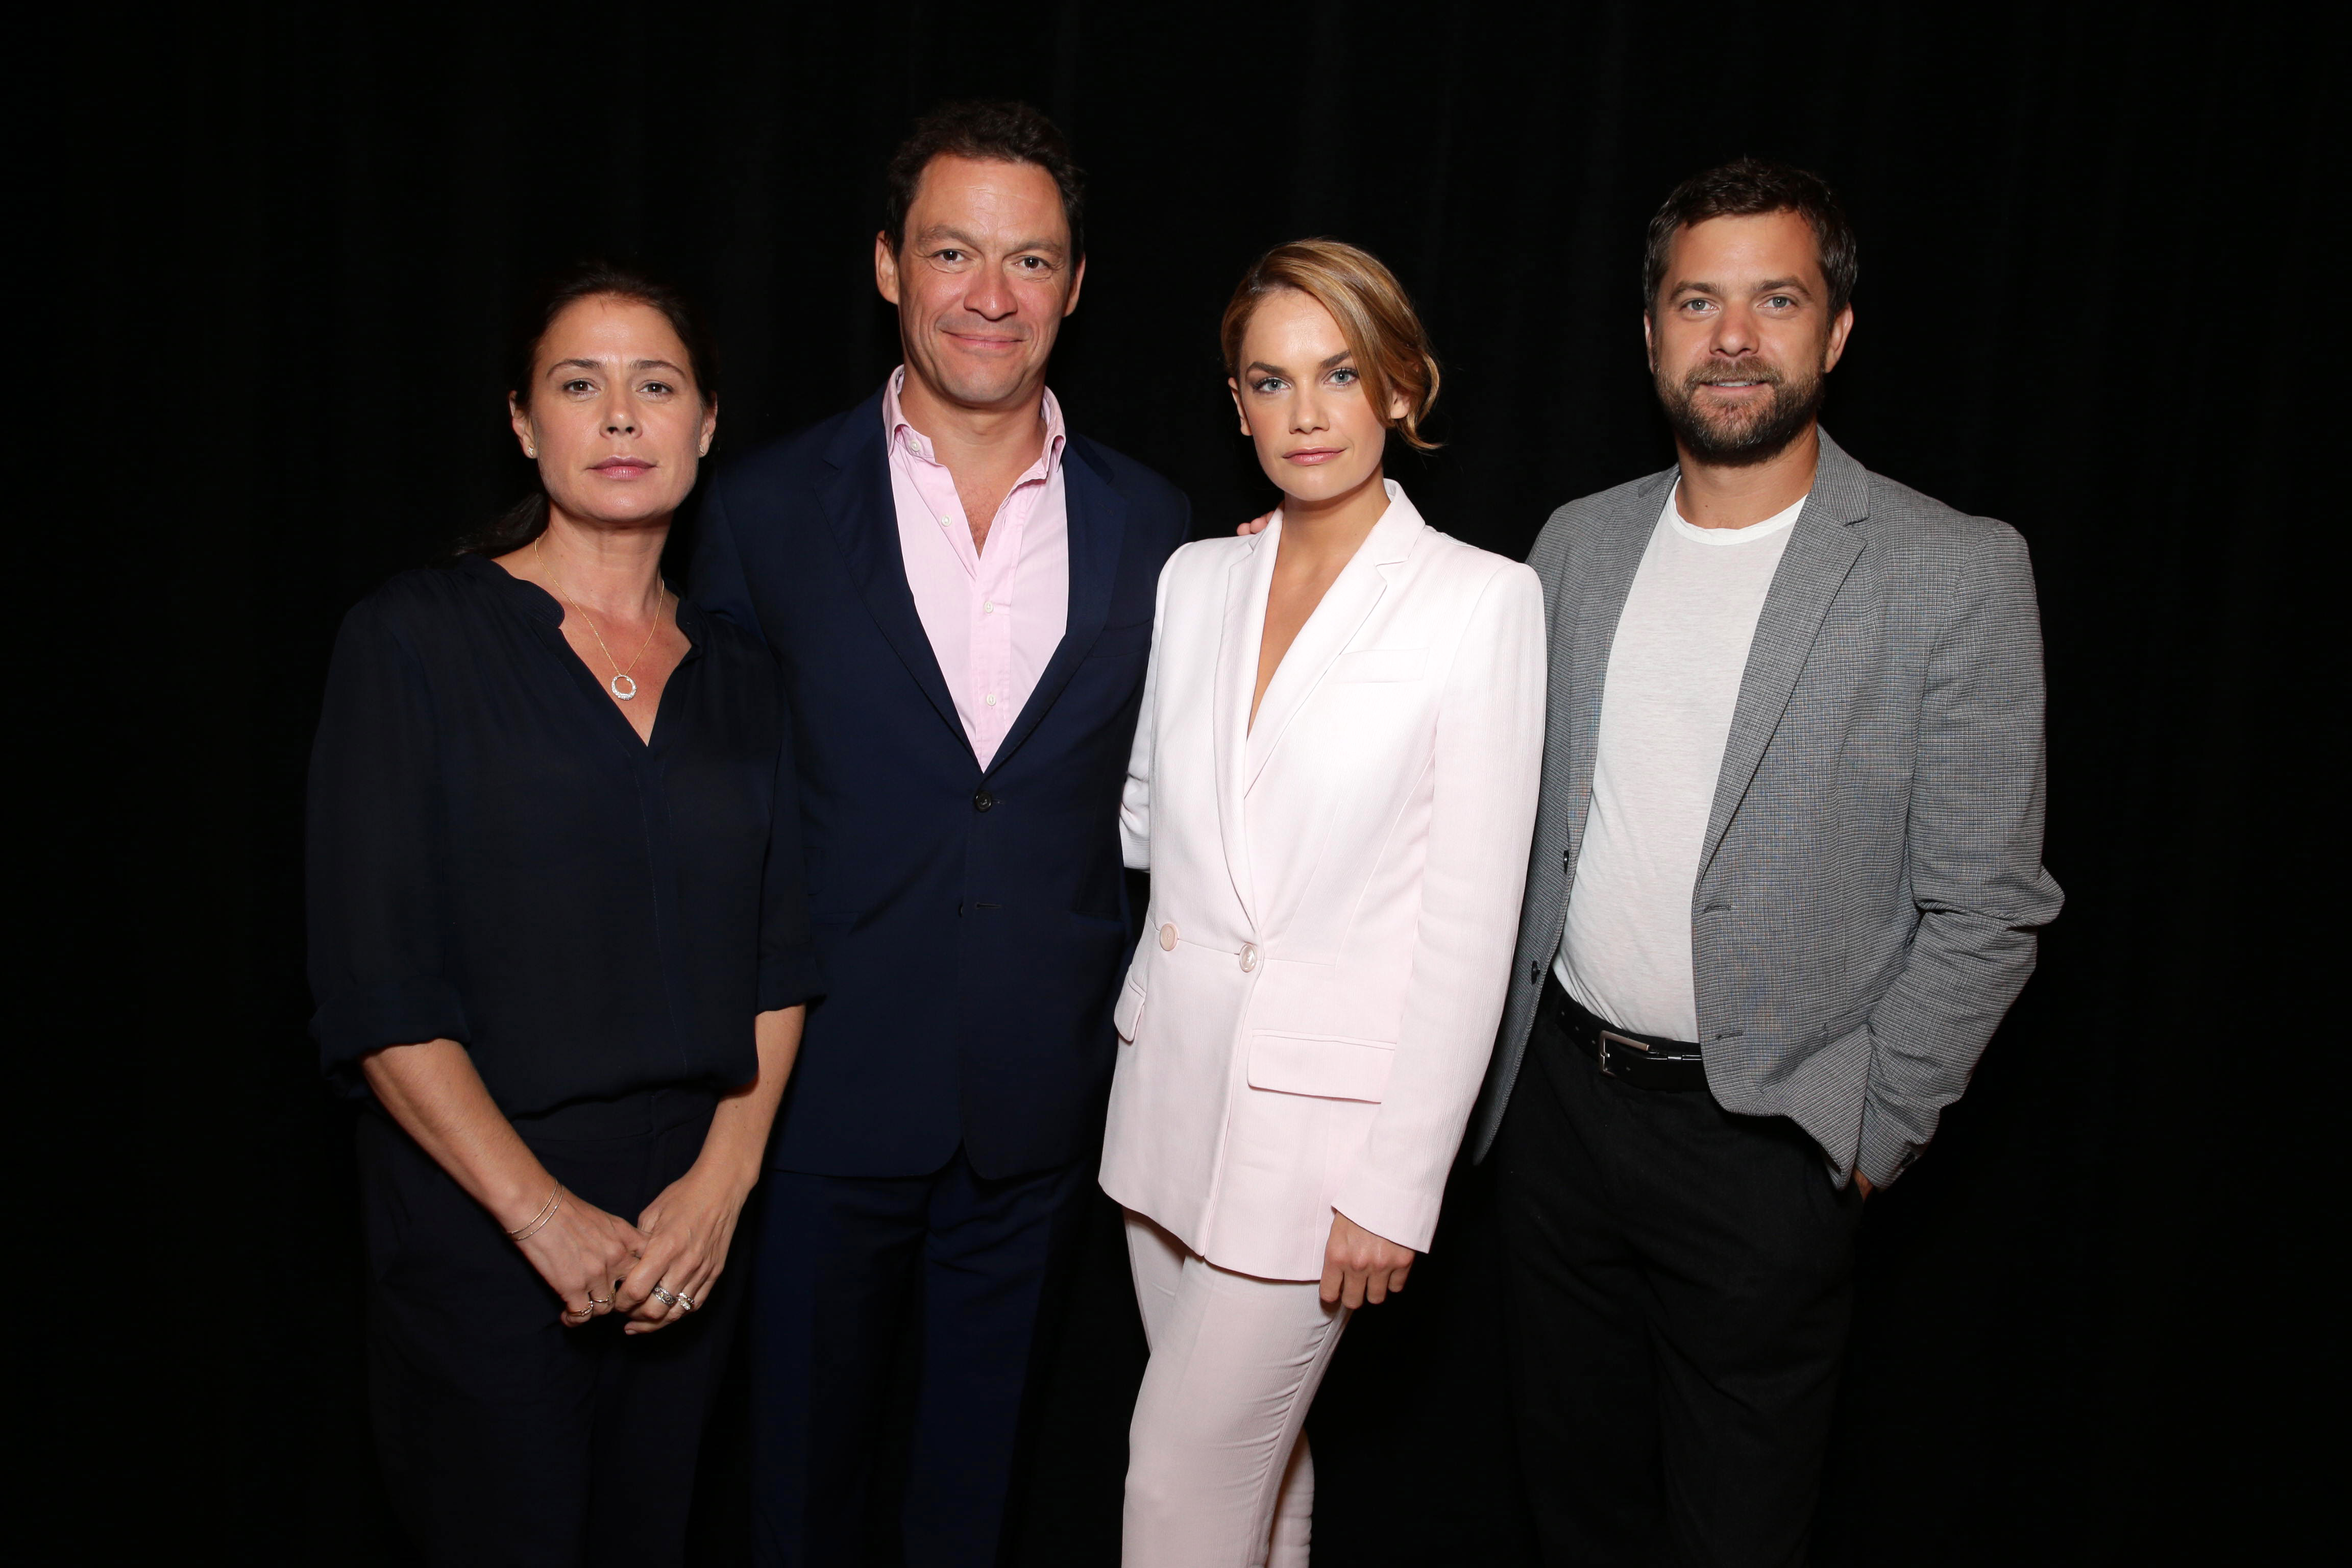 EXCLUSIVE - Maura Tierney, Dominic West, Ruth Wilson and Joshua Jackson seen at Showtime's 2015 Summer TCA held at The Beverly Hilton on Tuesday, August 11, 2015, in Beverly Hills. (Photo by Eric Charbonneau/Invision for Showtime/AP Images)